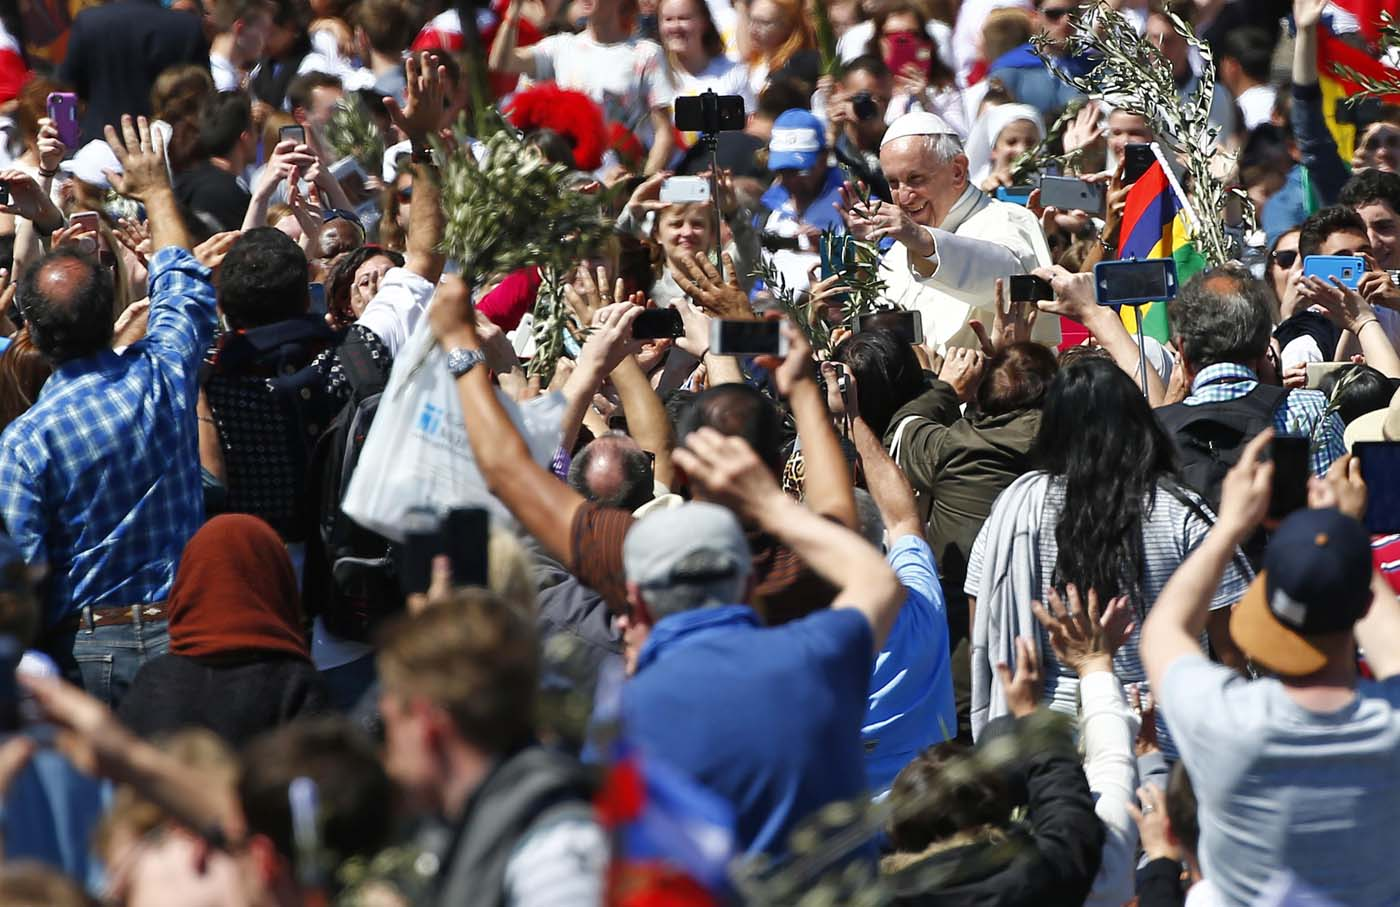 Pope Francis waves at the end of the Palm Sunday Mass in Saint Peter's Square at the Vatican April 9, 2017. REUTERS/Tony Gentile